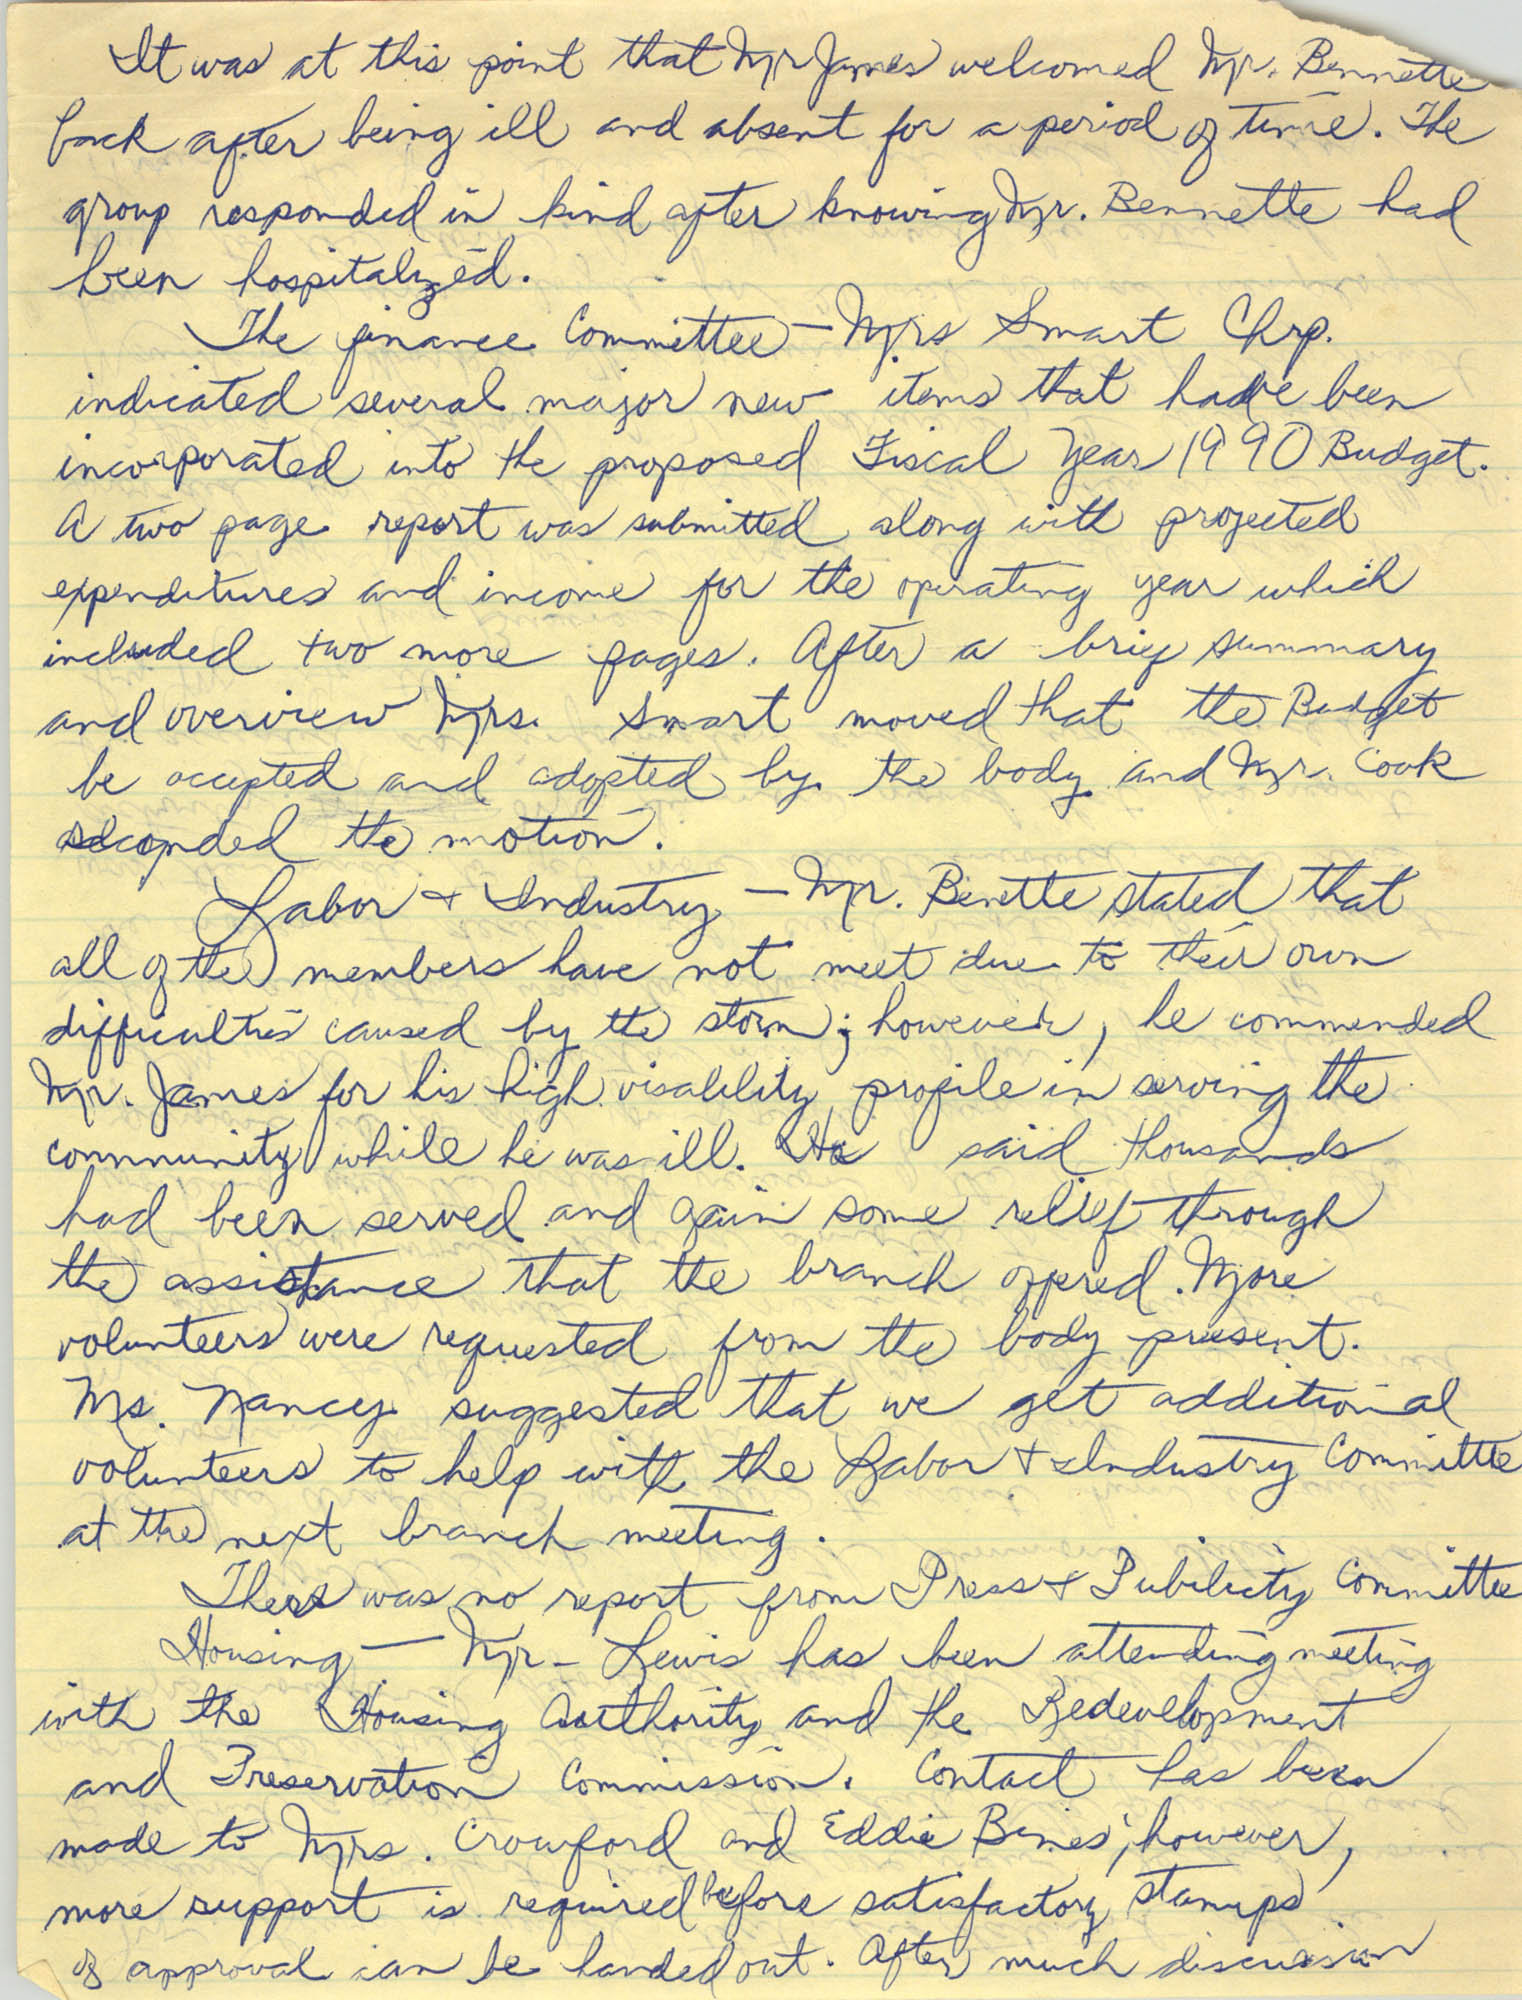 Notes, Charleston Branch of the NAACP